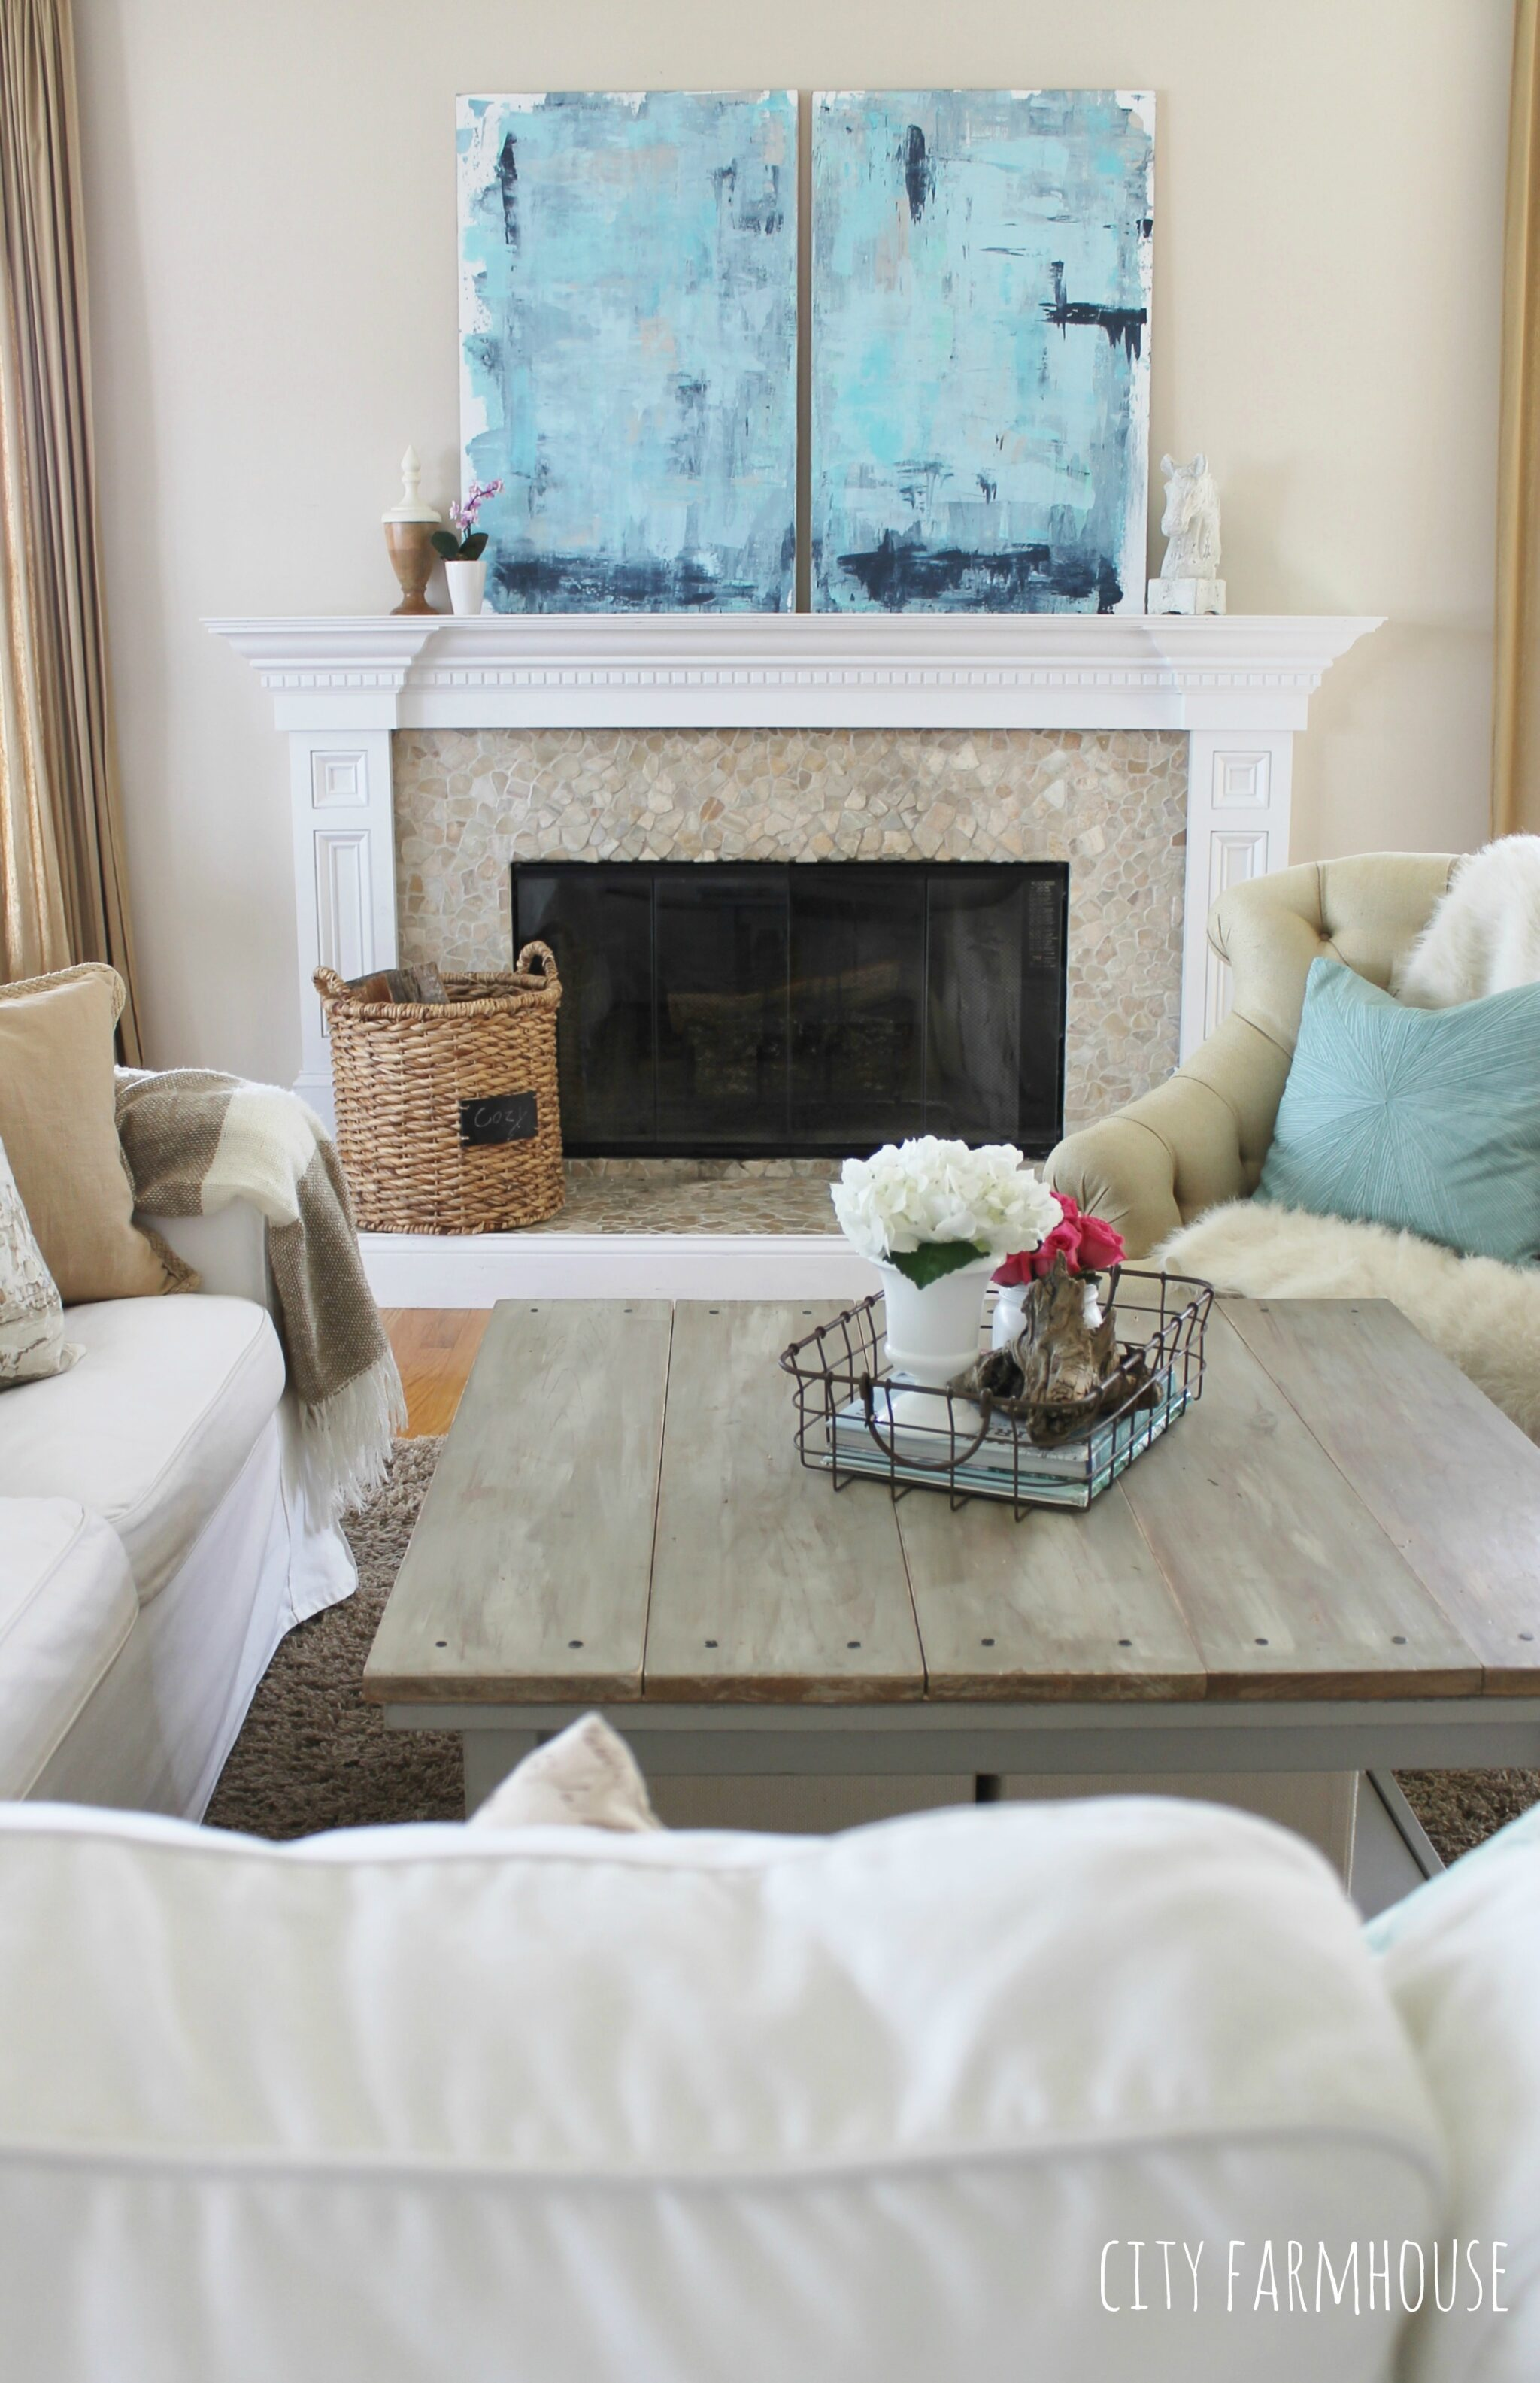 DIY Abstract Art Love The Pop Of Color With All White Slipcovers Neutral Furnishings